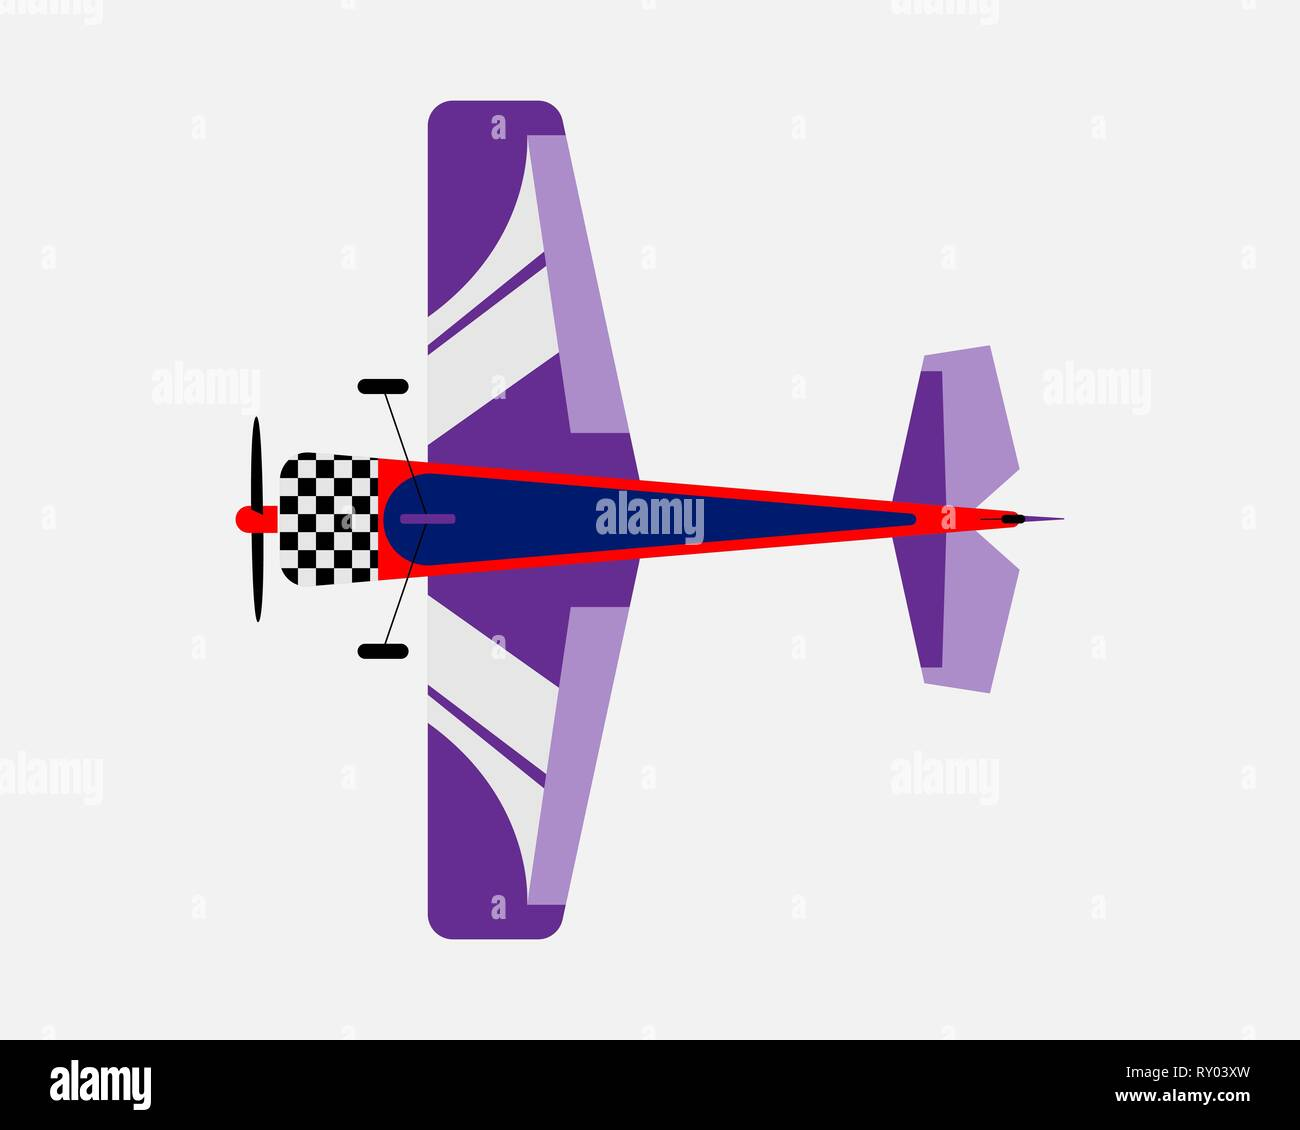 Airplane with a propeller. Bottom view. Vector illustration. - Stock Vector